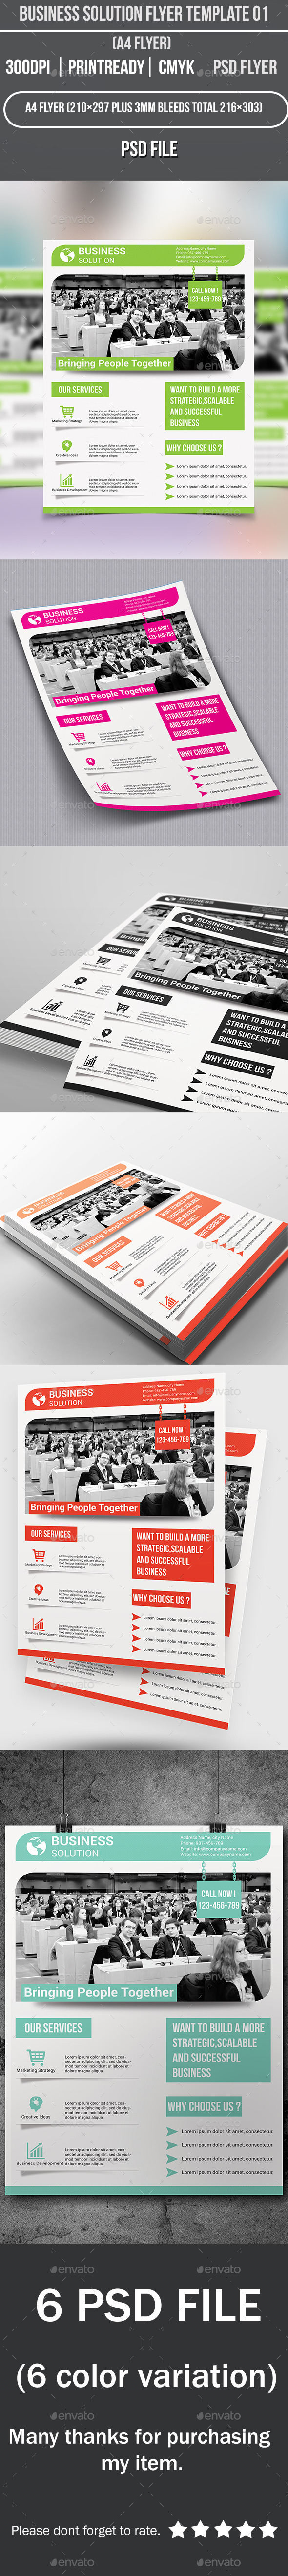 GraphicRiver Business Solution Flyer Template 01 9165280